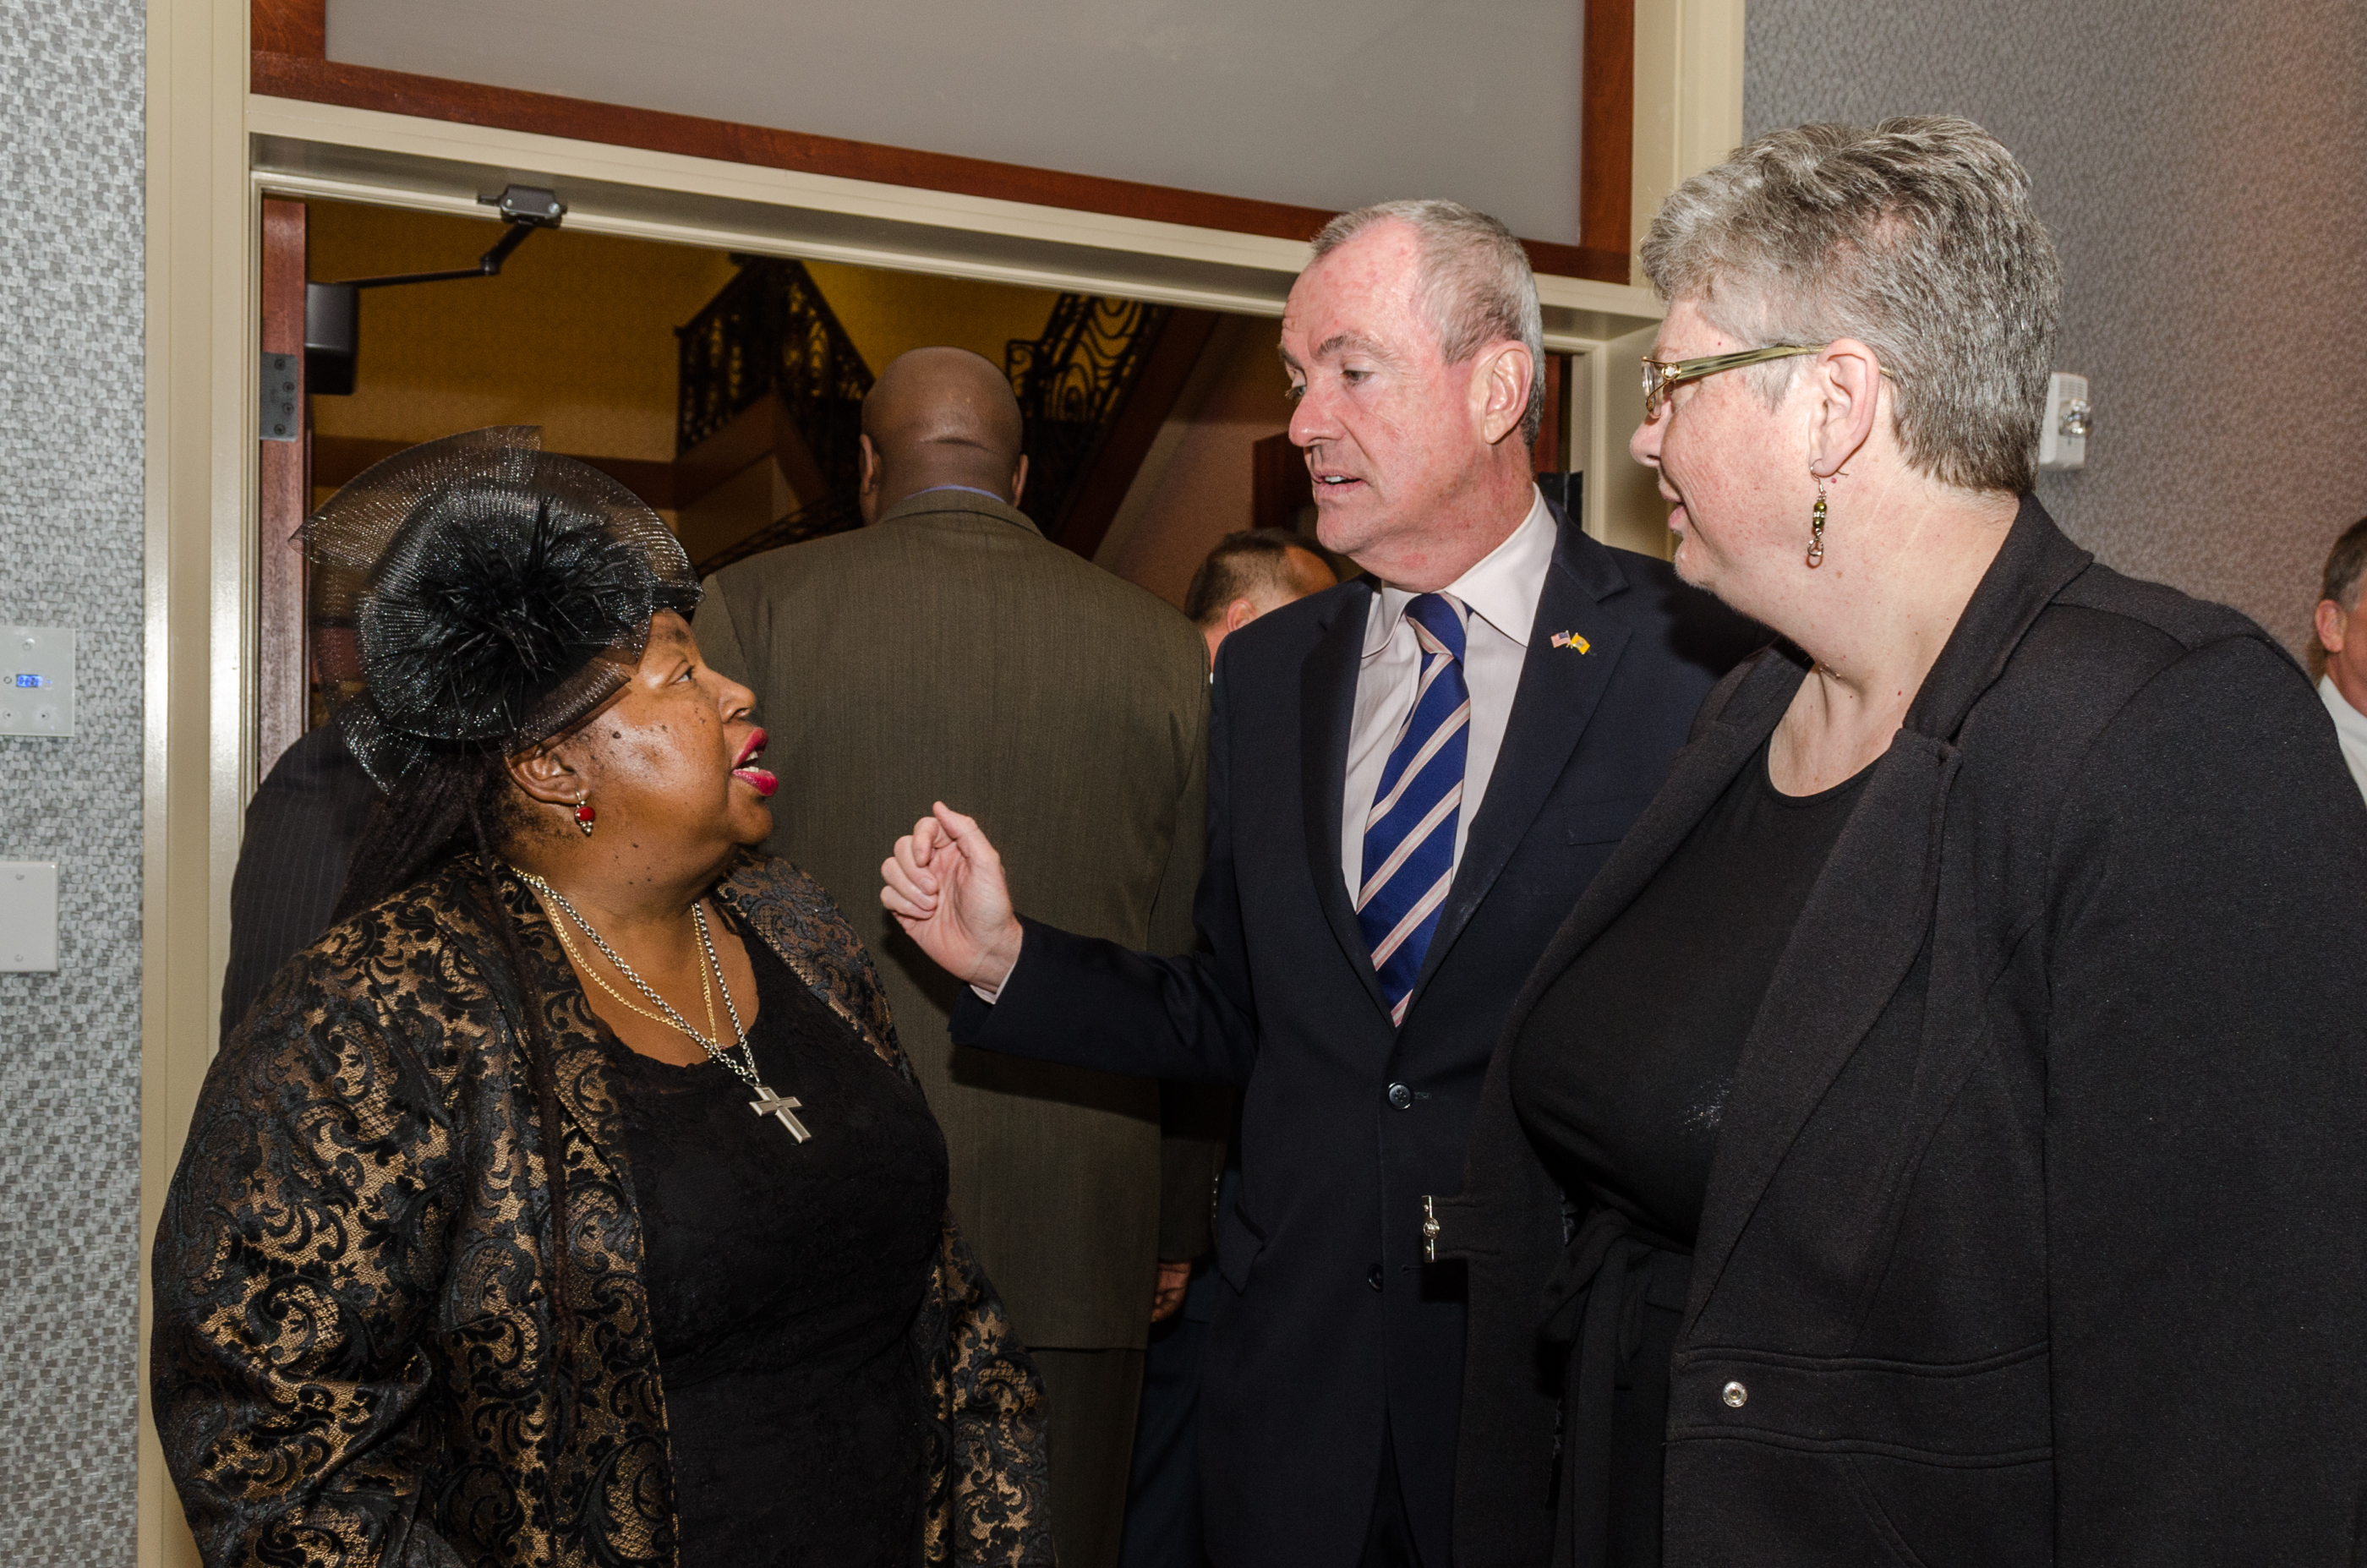 Somerset County Democratic Gala